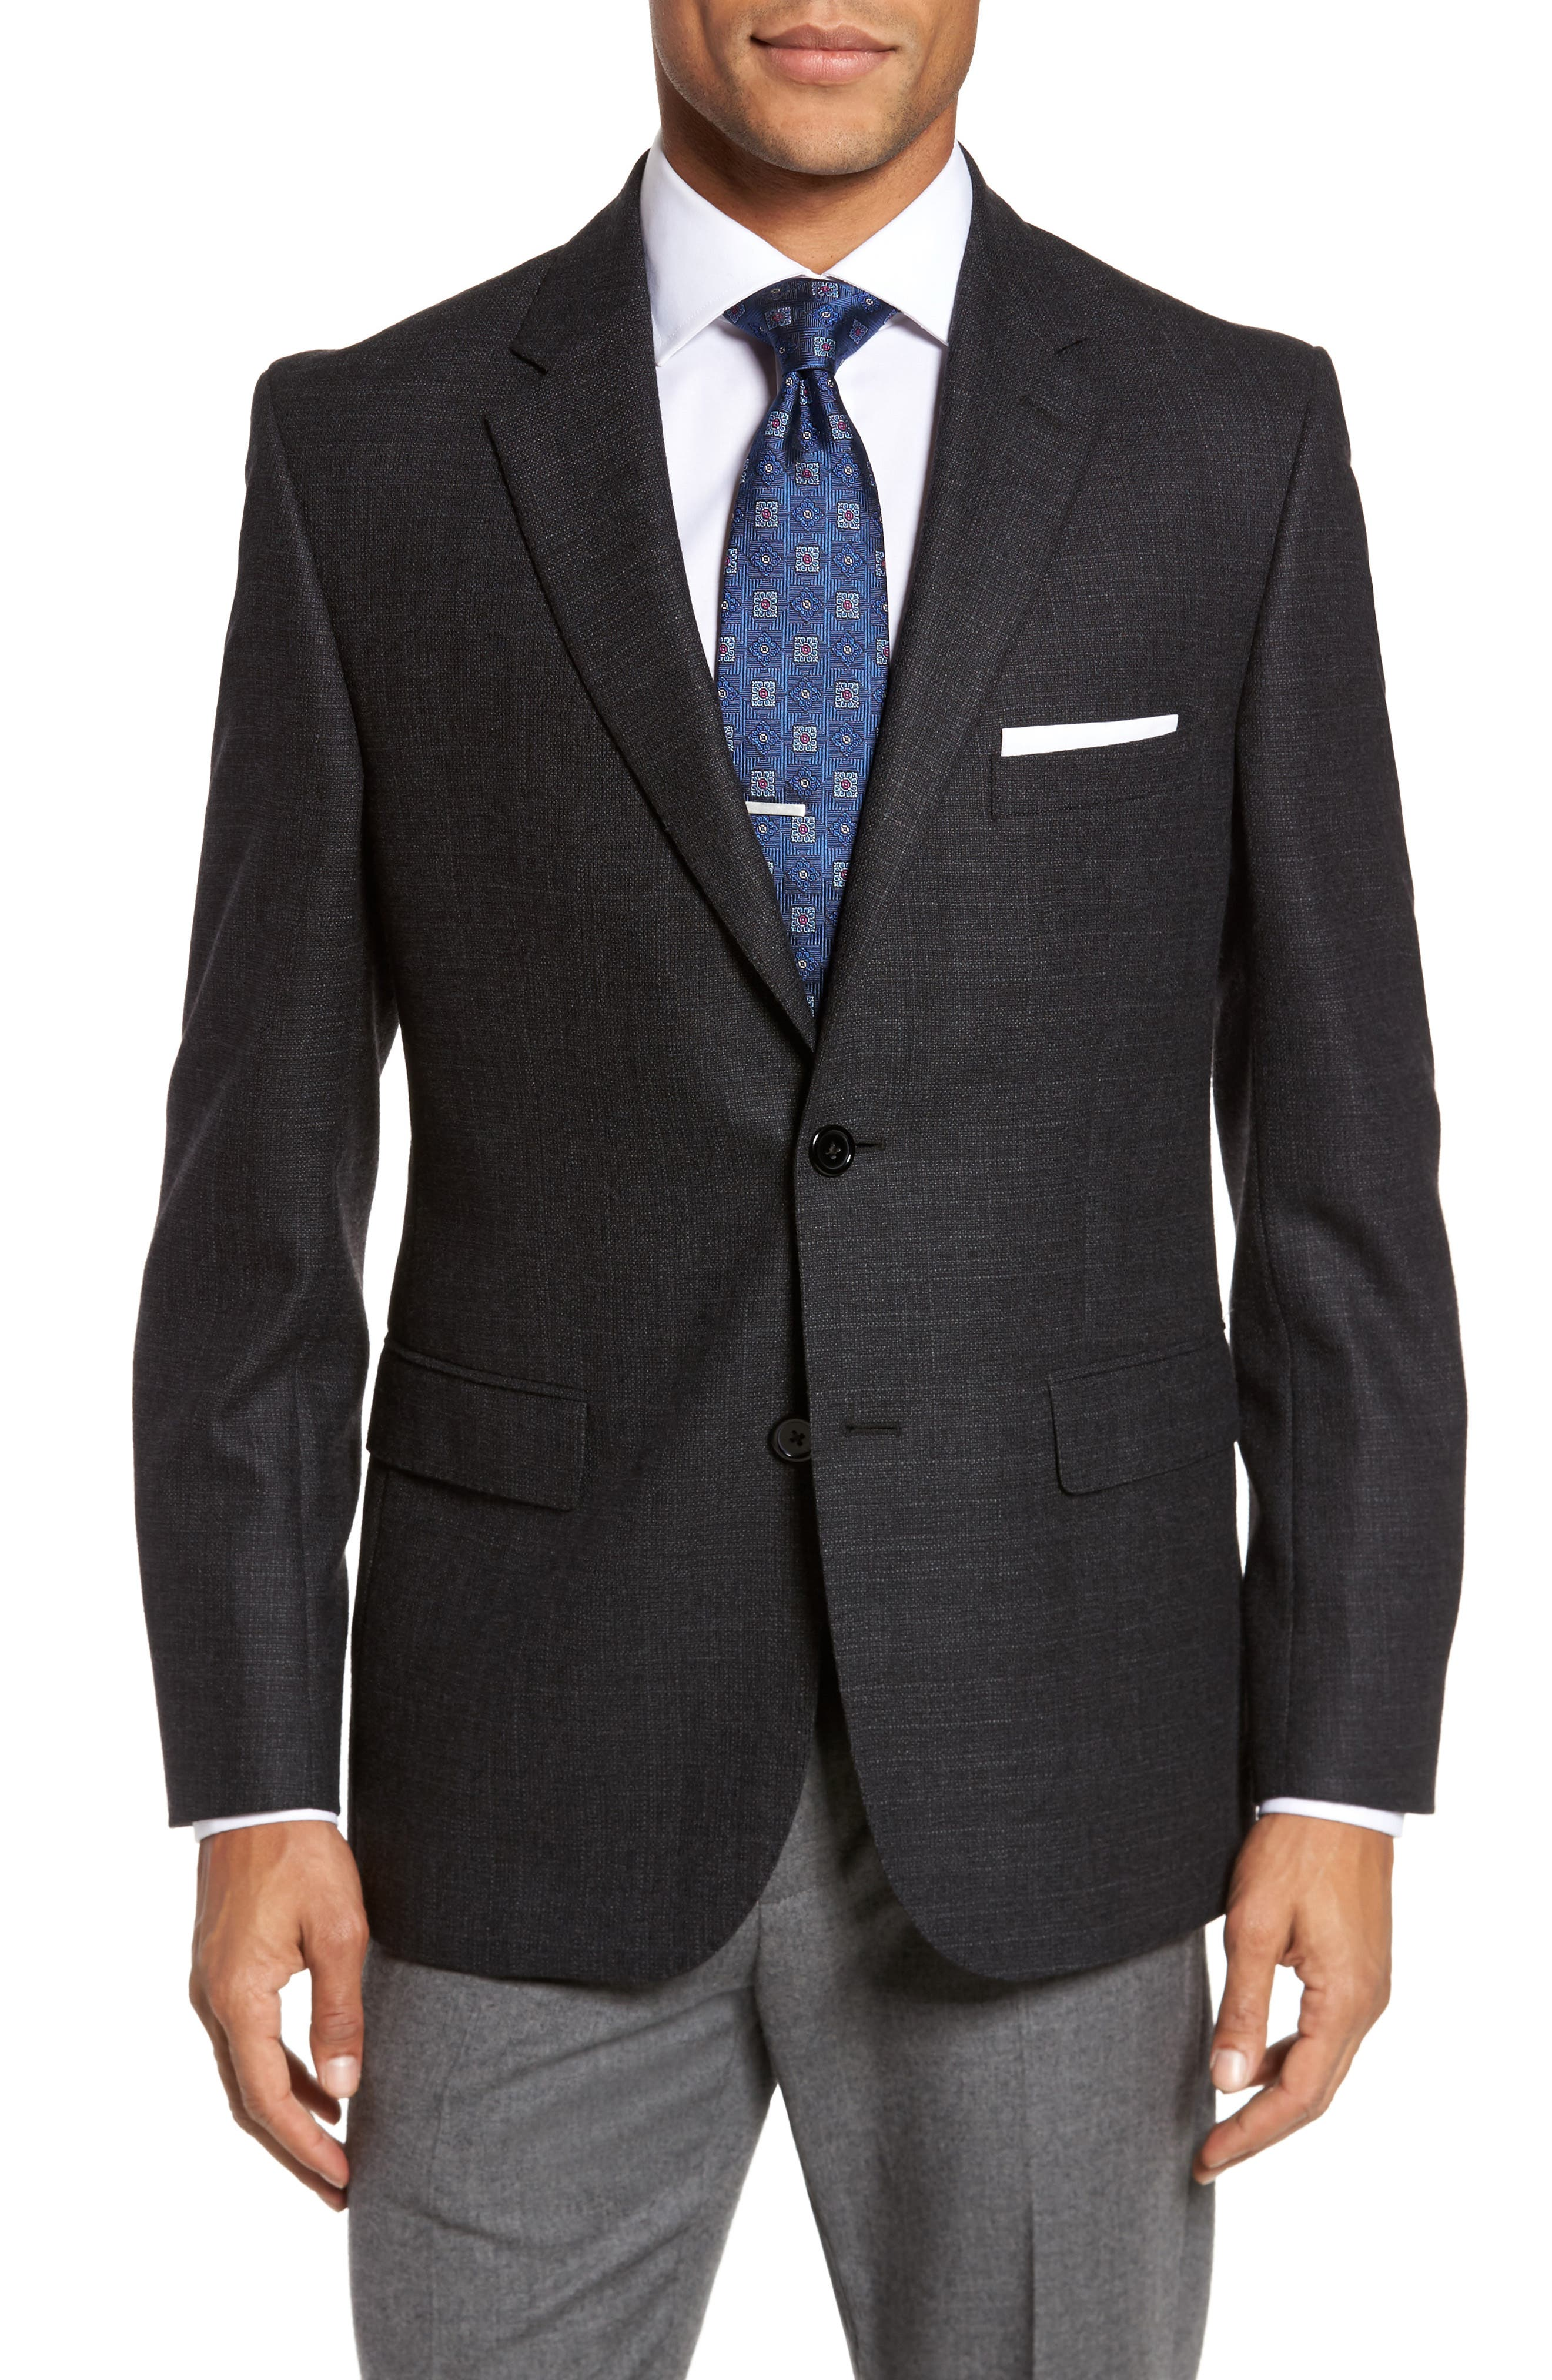 Classic Fit Wool Blazer,                             Main thumbnail 1, color,                             Charcoal